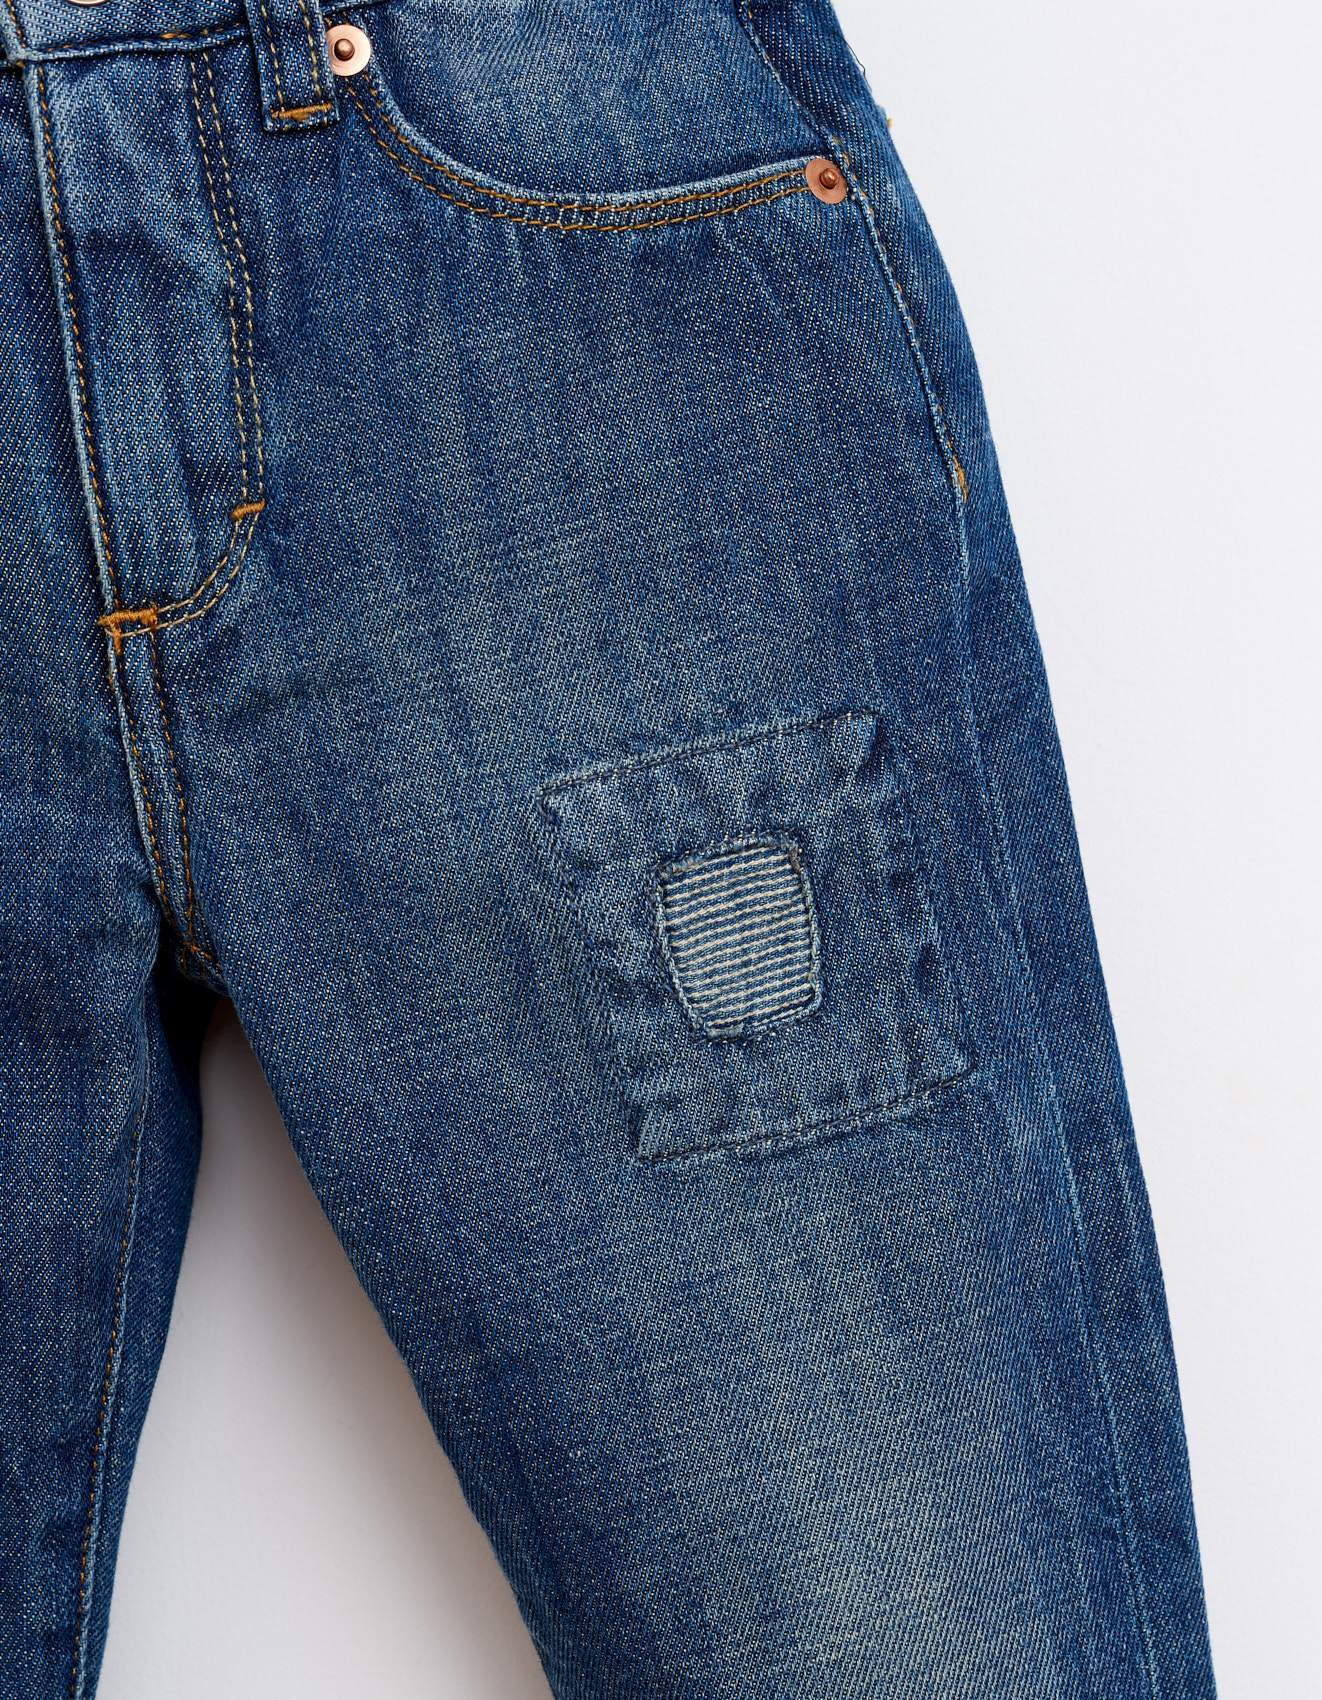 Bellerose dark blue denim pants for girls